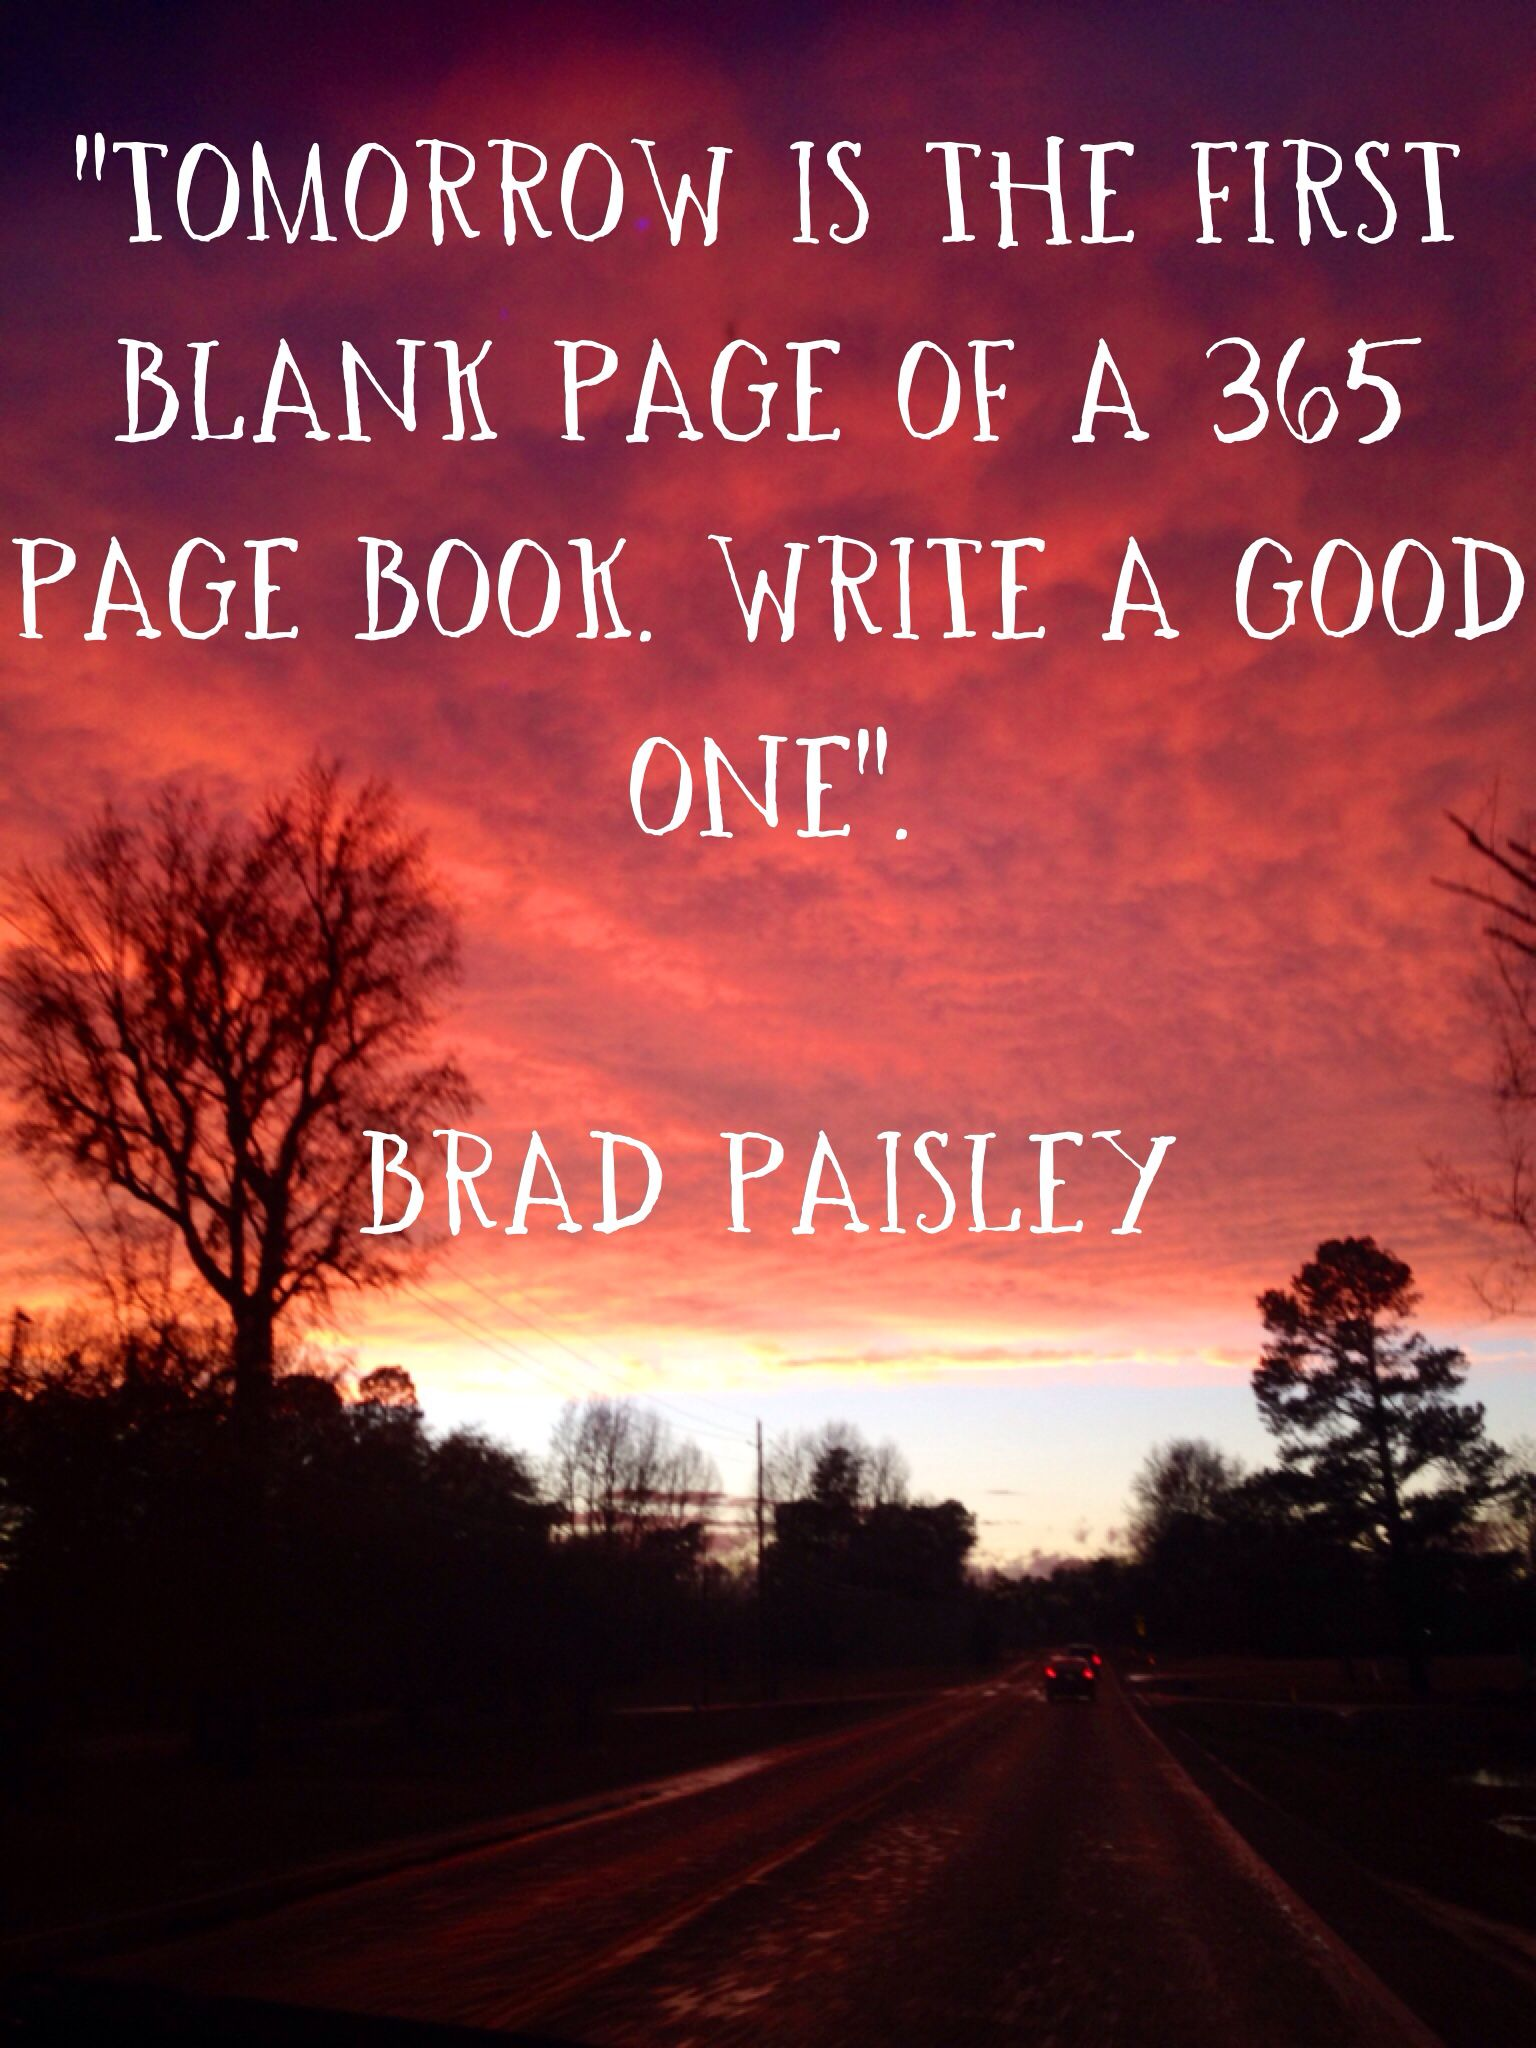 new year quotes tomorrow is the first blank page of a 365 page book write a good one brad paisley